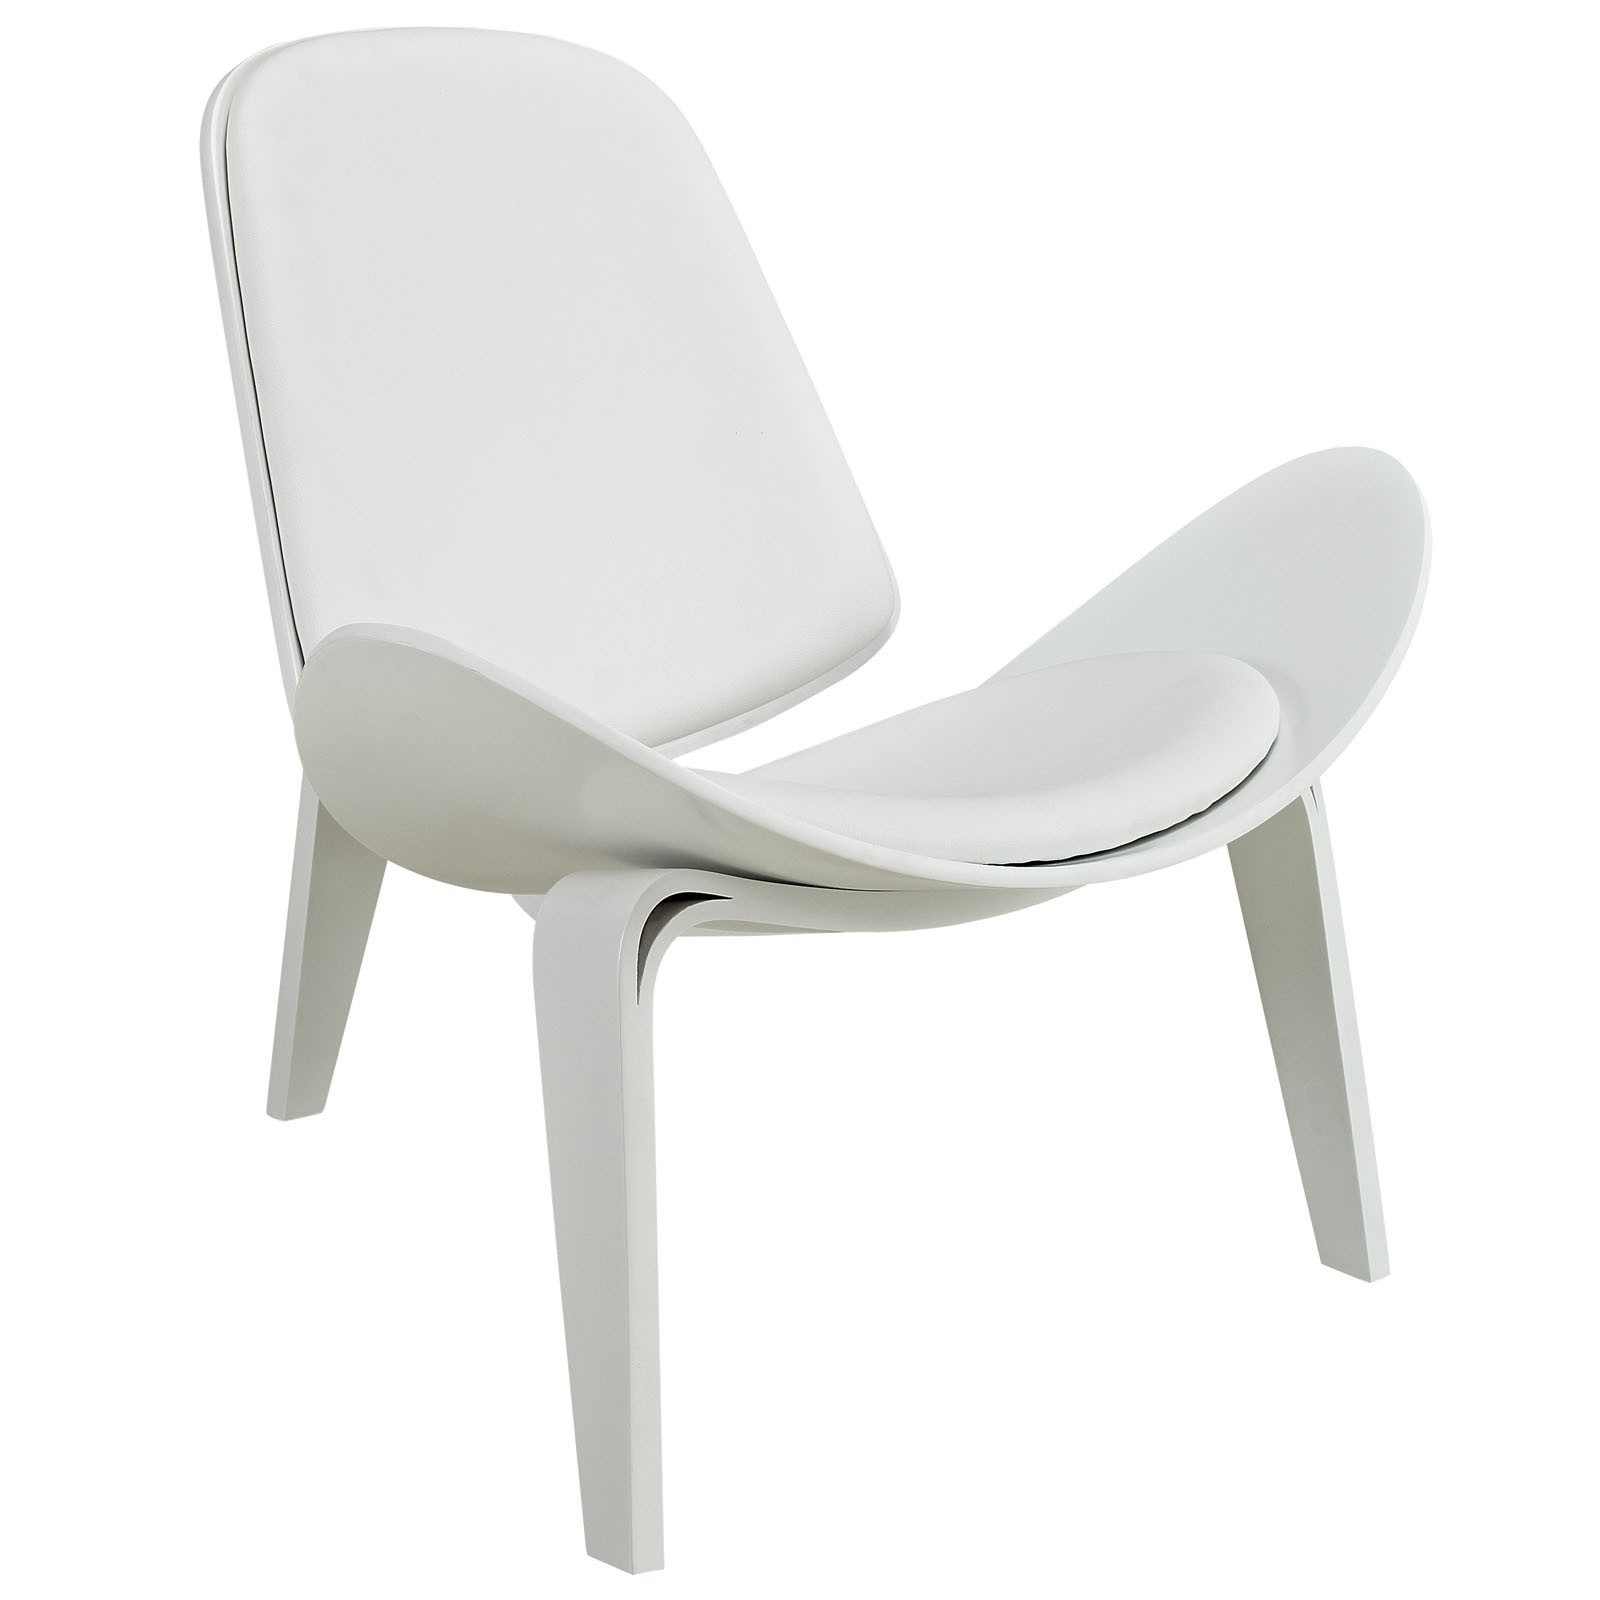 Arch Vinyl Lounge Chair-White White